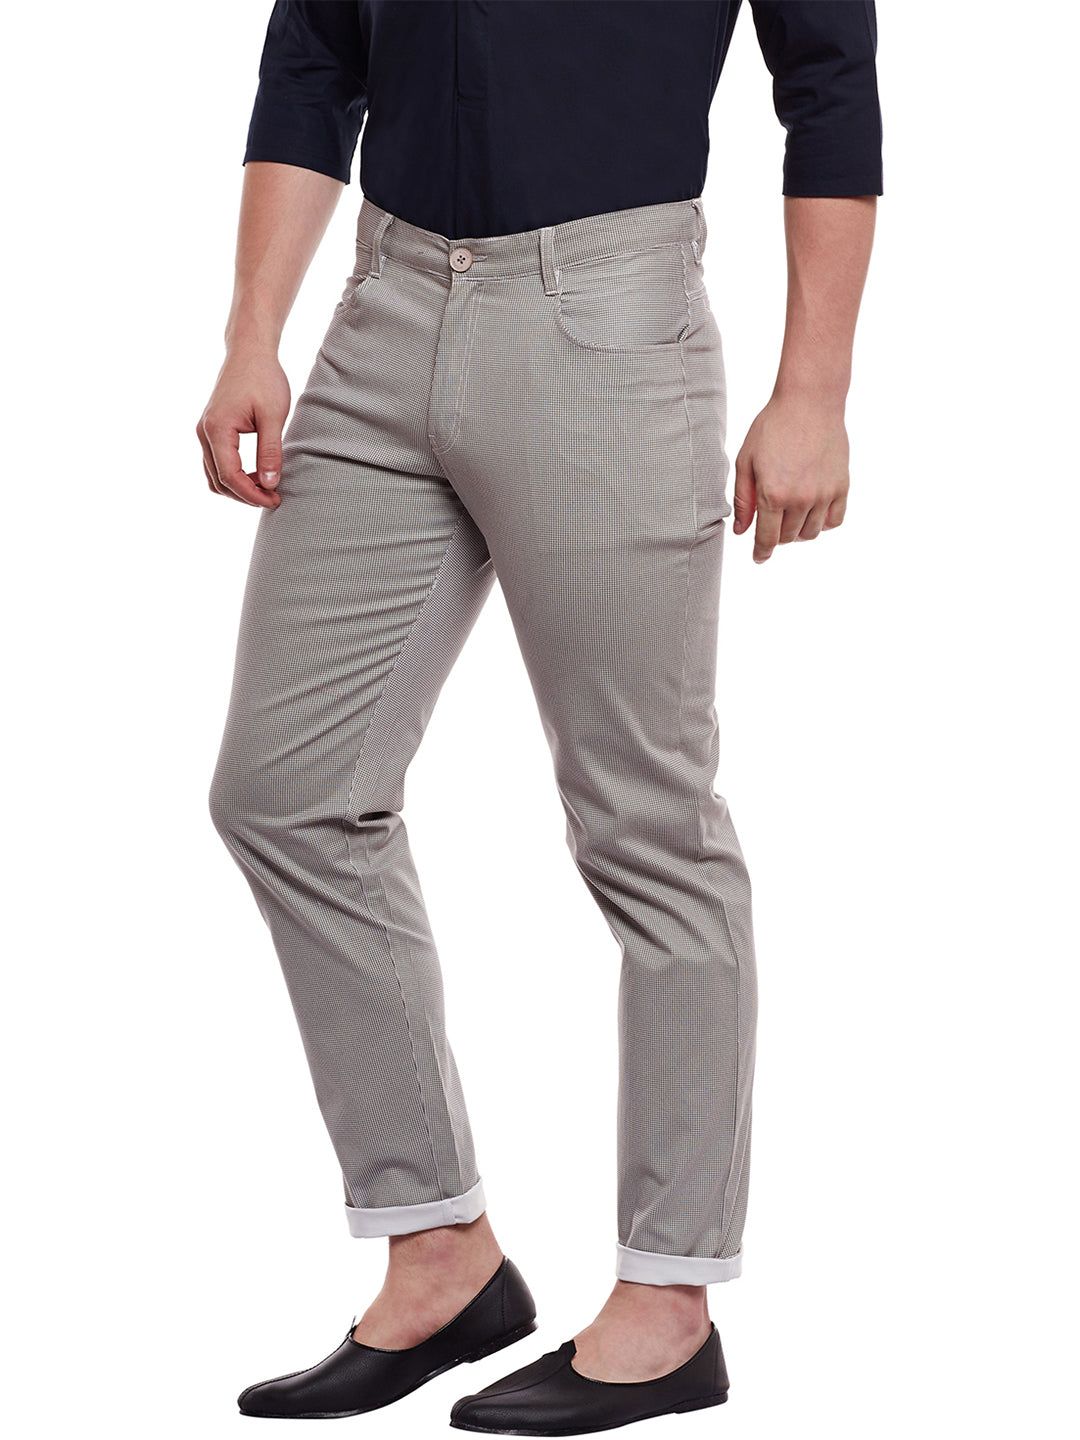 Atorse Textured Trouser